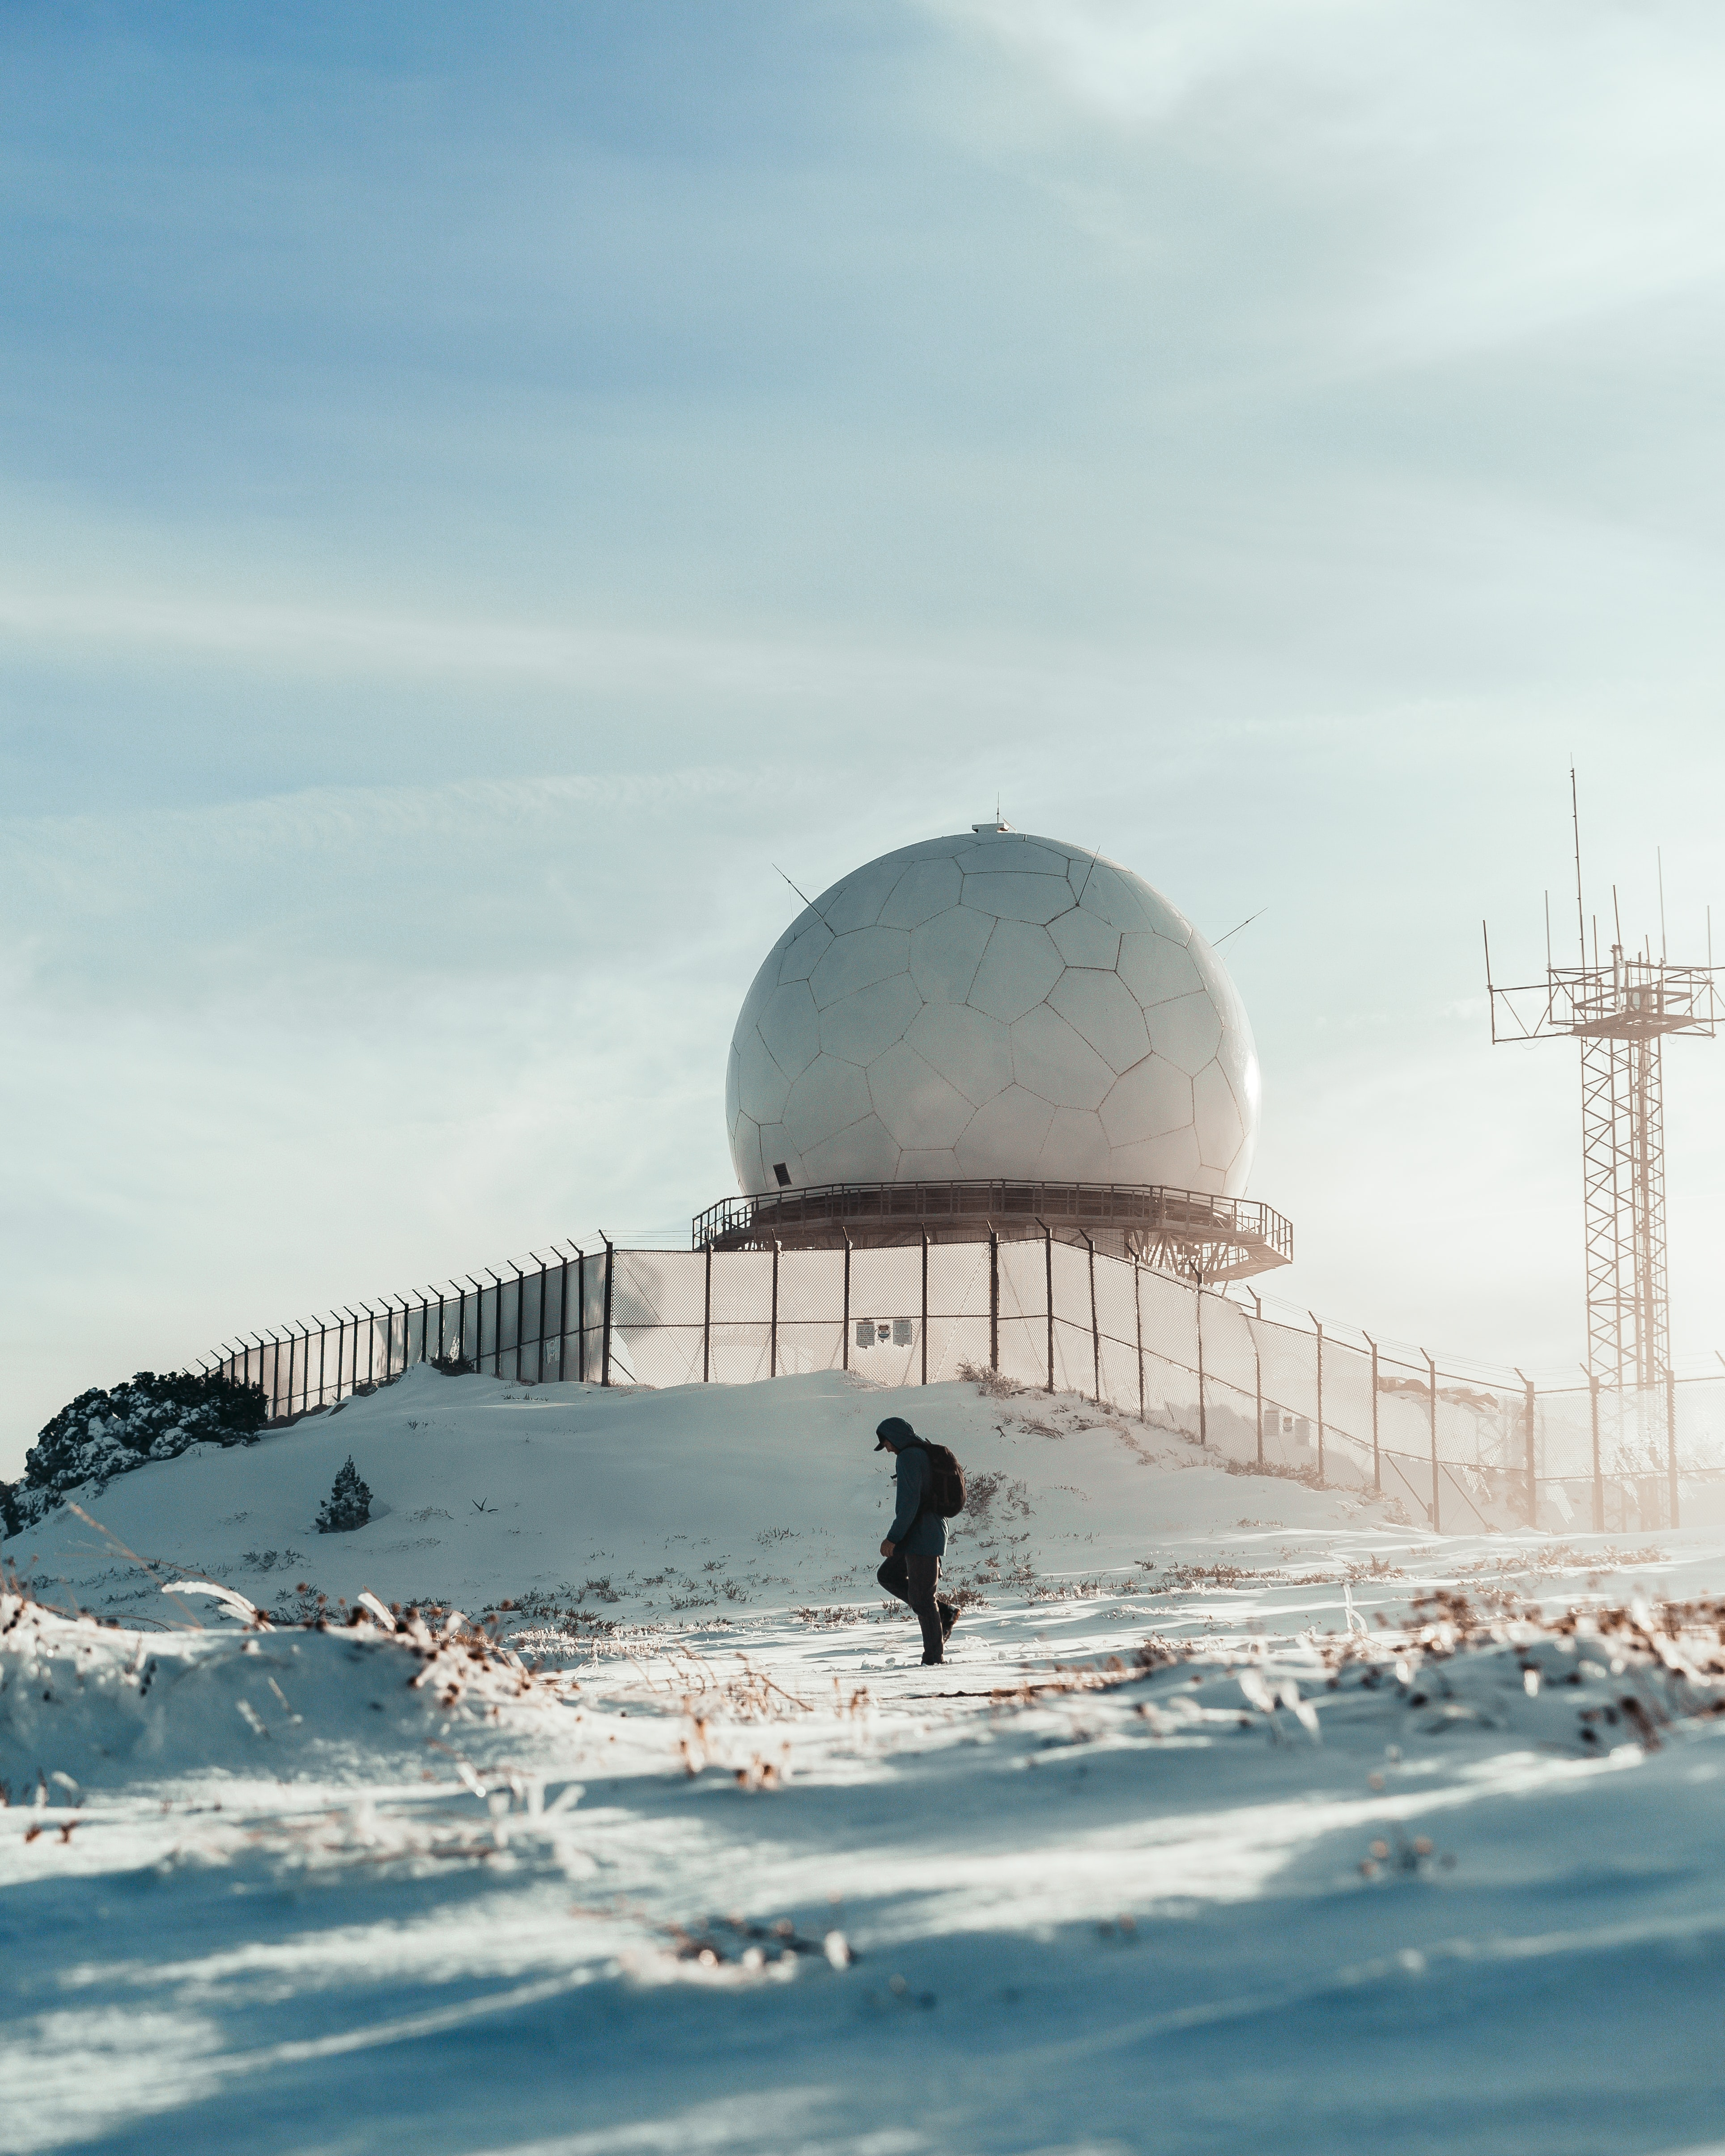 136296 download wallpaper Miscellanea, Miscellaneous, Human, Person, Loneliness, Building, Ball, Snow, Winter screensavers and pictures for free